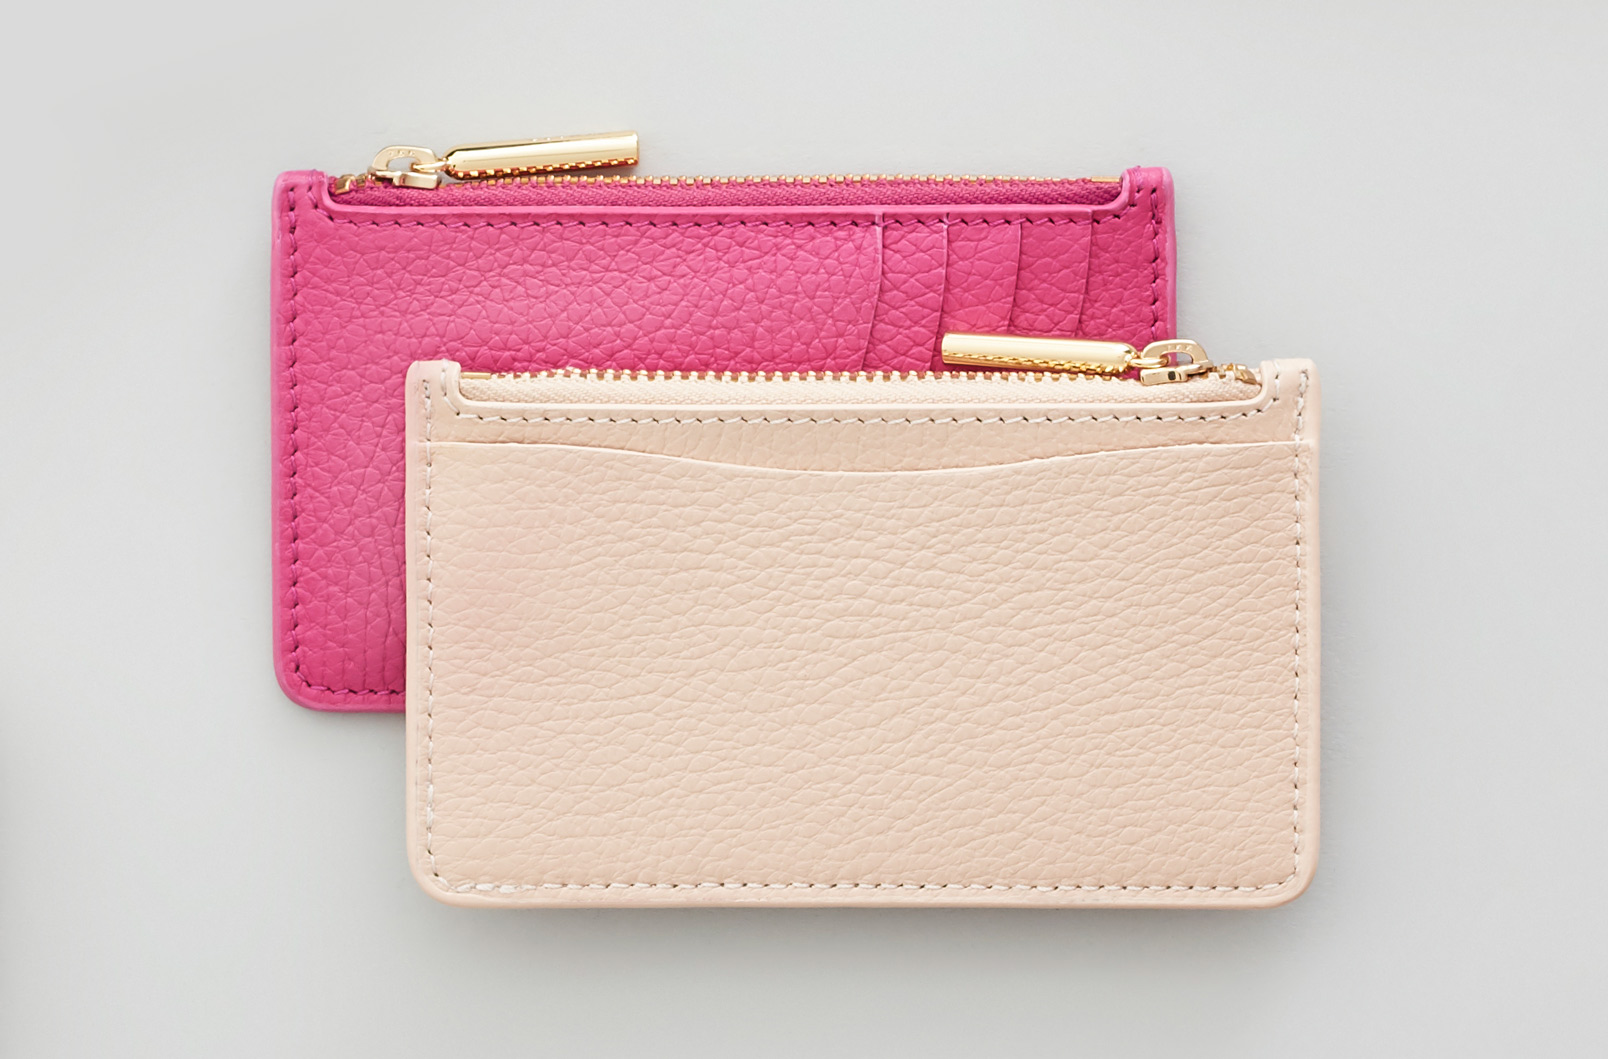 Cuyana Zip Cardholder image showing card slots